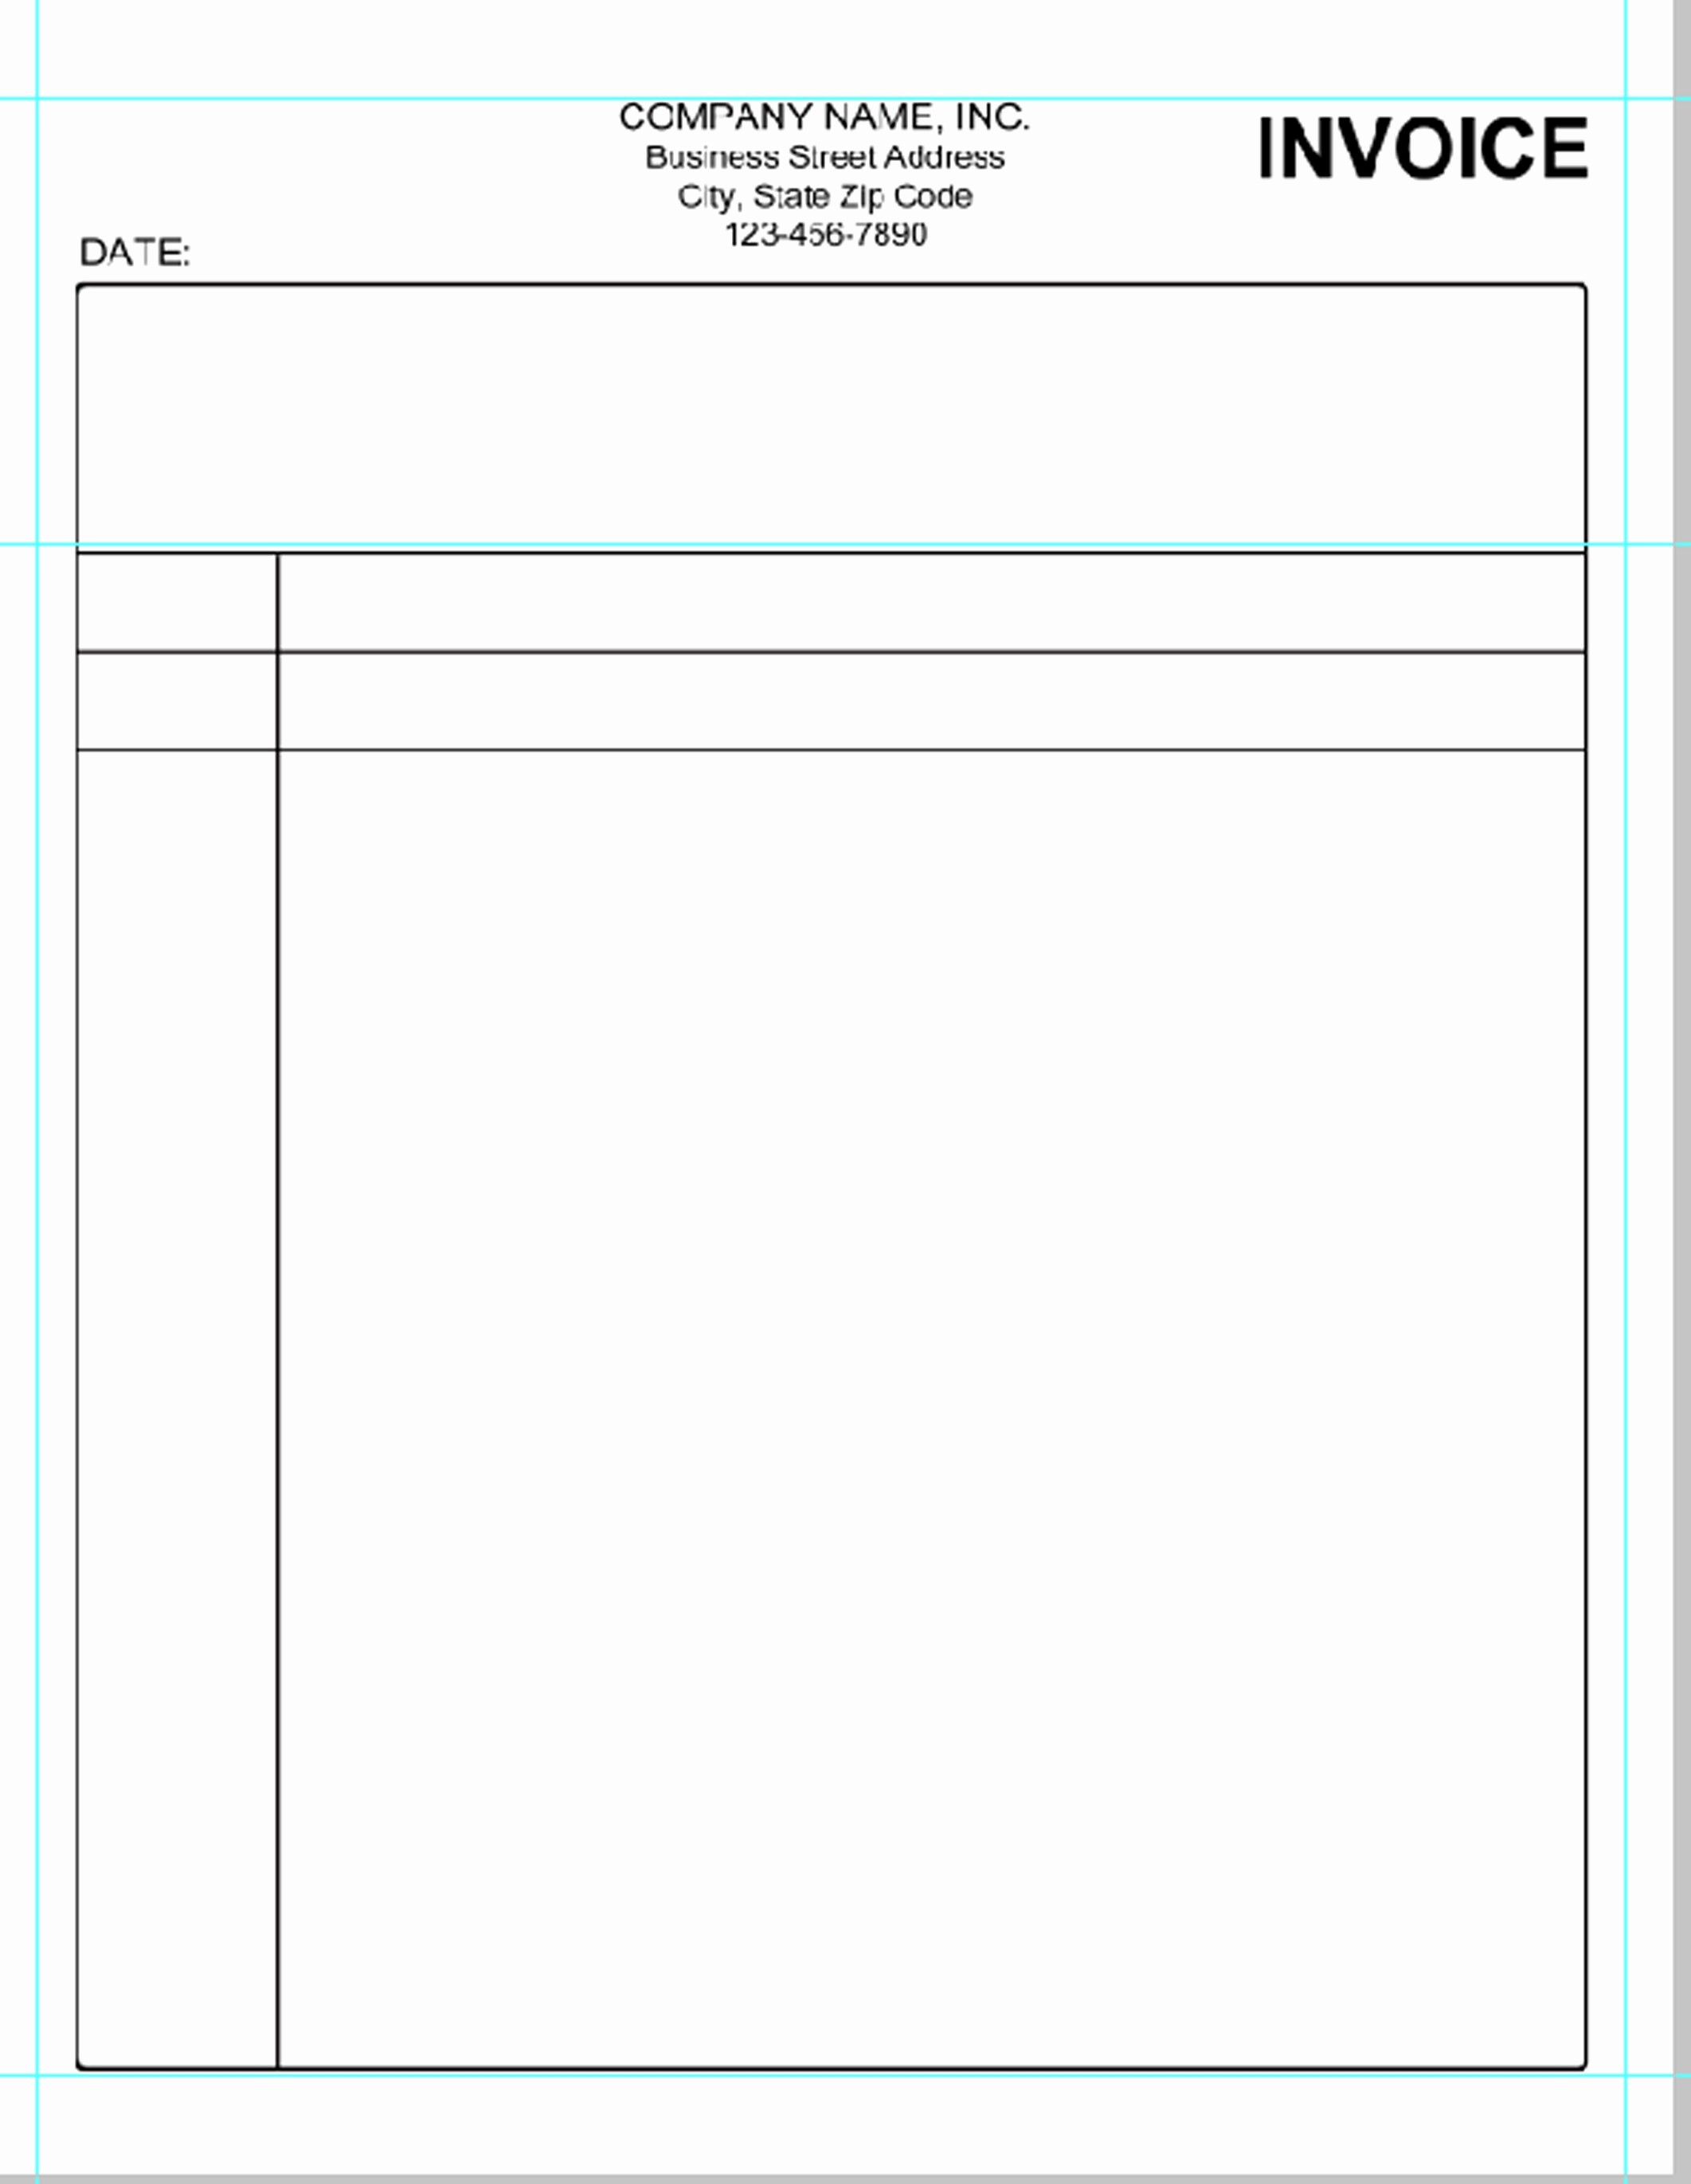 Free Invoice Template for Word Fresh Simple Invoice Template Microsoft Word Invoice Template